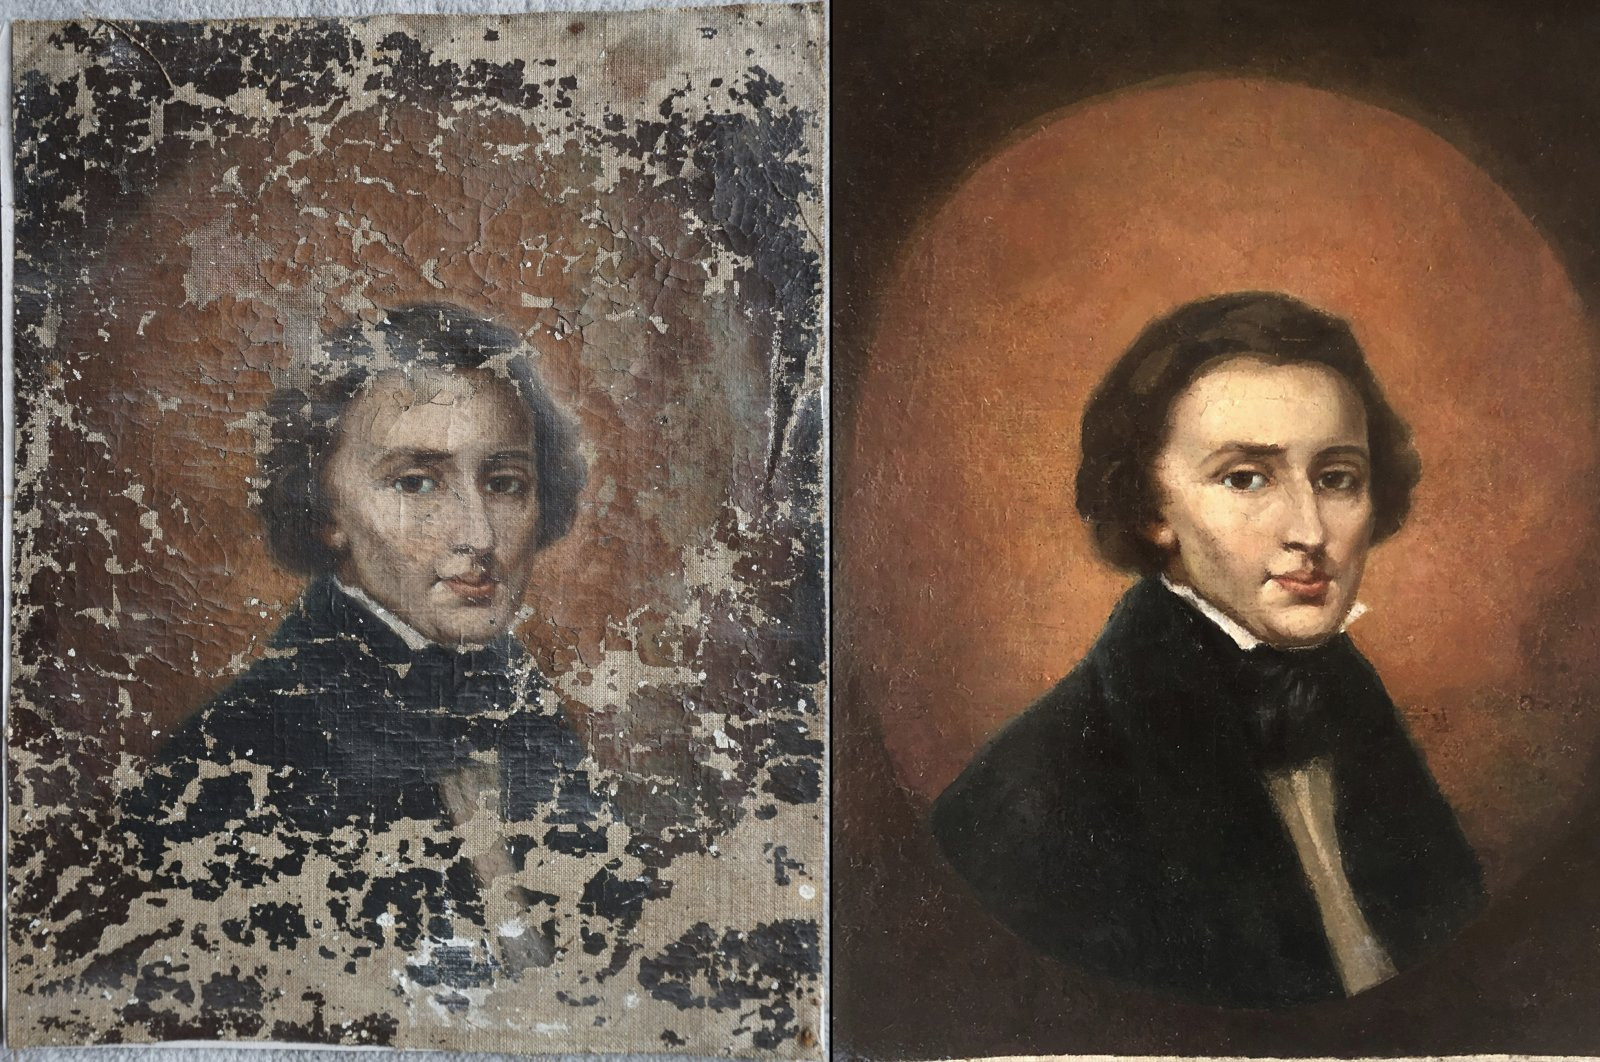 This combination of undated photos shows a portrait of Polish composer Frederic Chopin before and after restoration. (Dariusz Markowski and Jaroslaw Golebiowski via AP)